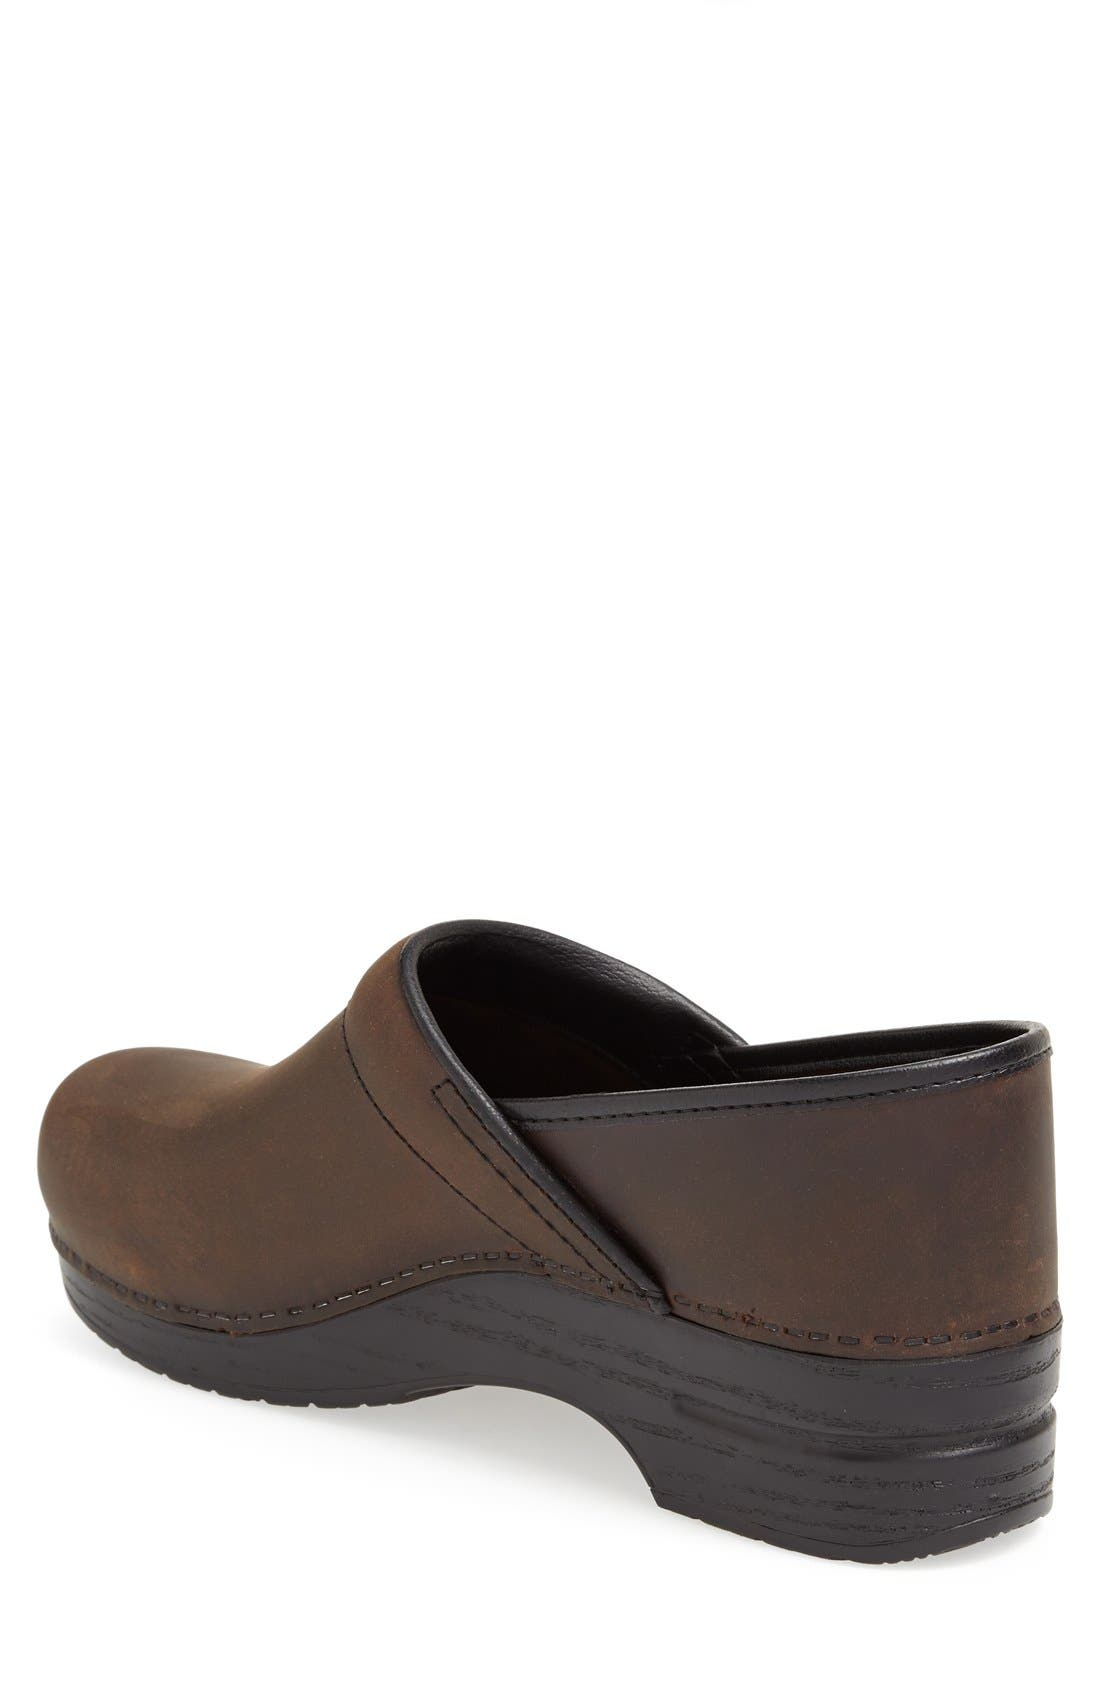 'Pro' Clog,                             Alternate thumbnail 2, color,                             ANTIQUE BROWN OILED